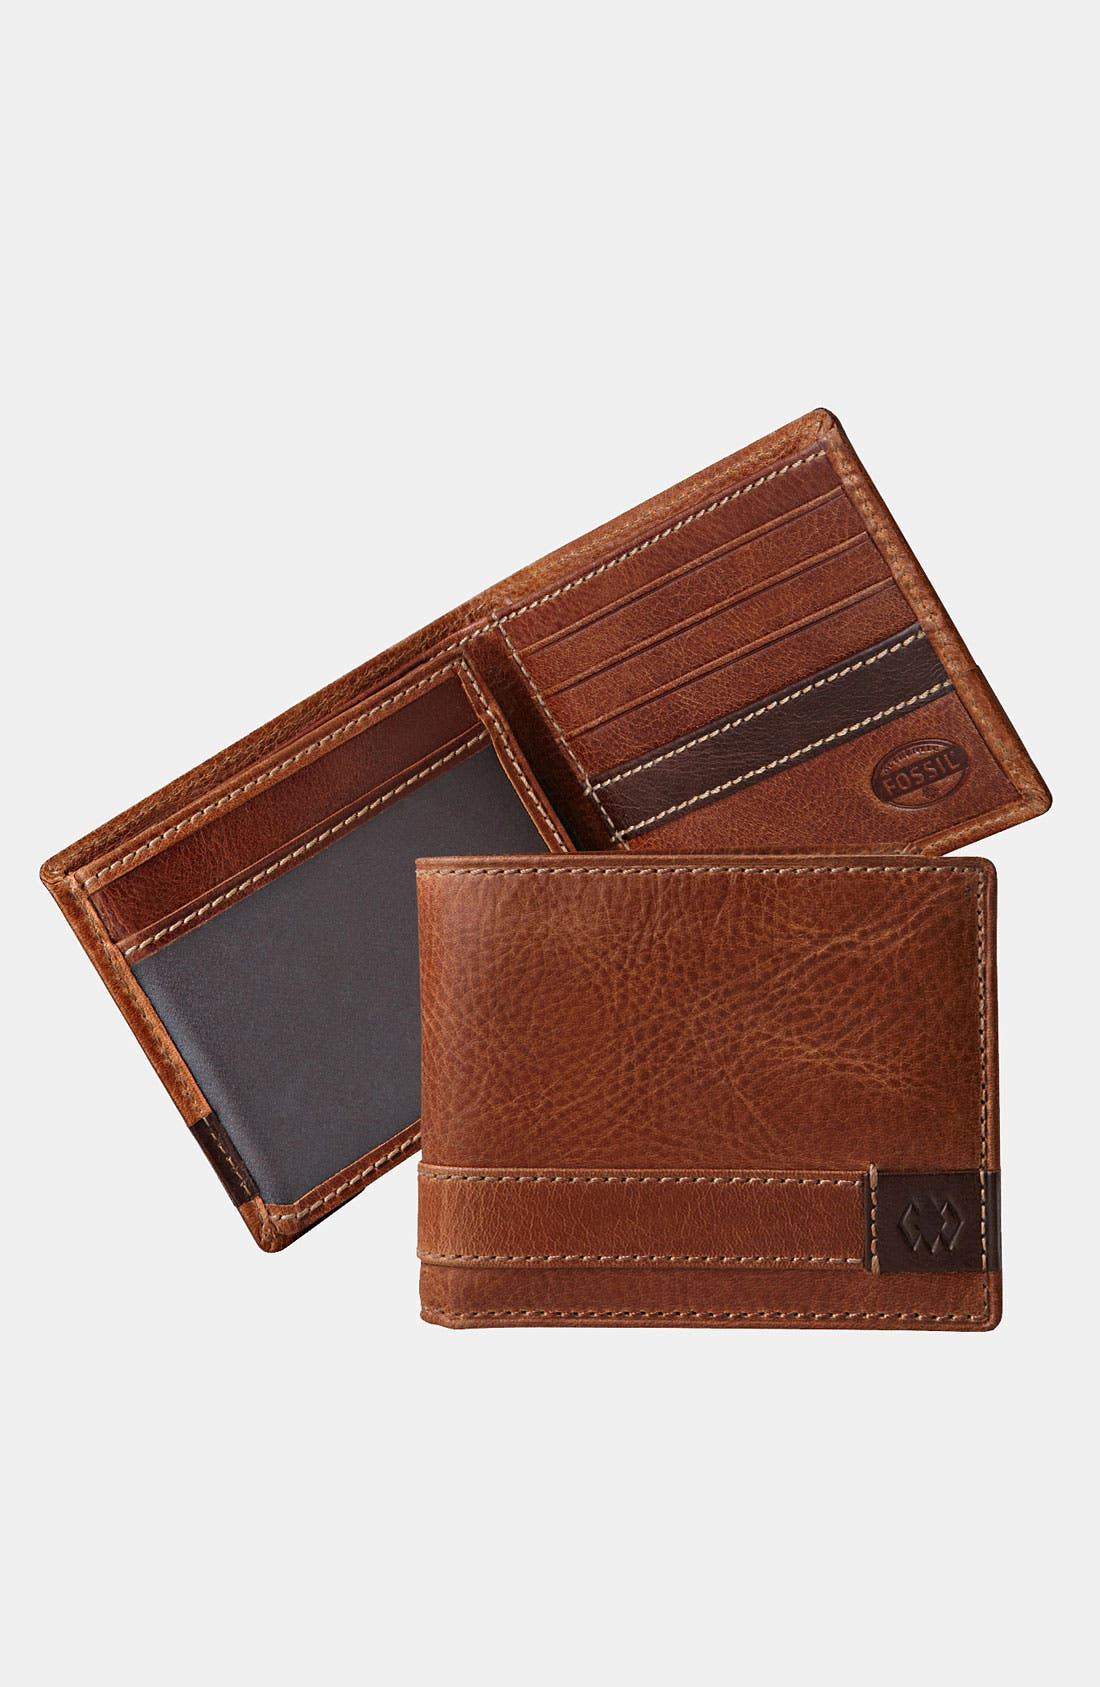 Main Image - Fossil 'Madison' Travel Wallet